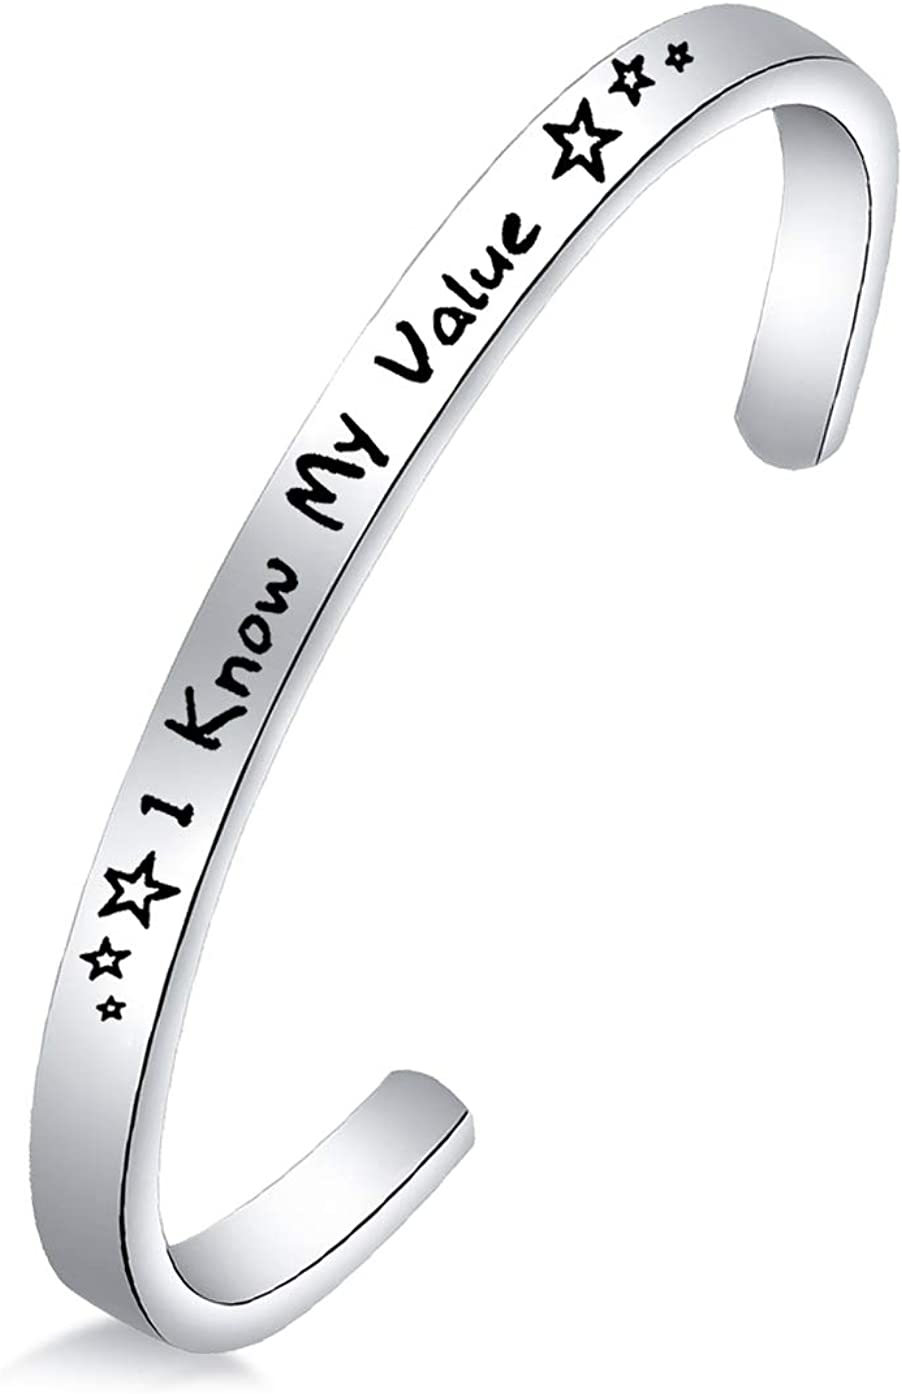 ENSIANTH Lowest price challenge I 2021 new Know My Value Cuff Jewelry Motivational For Bracelet